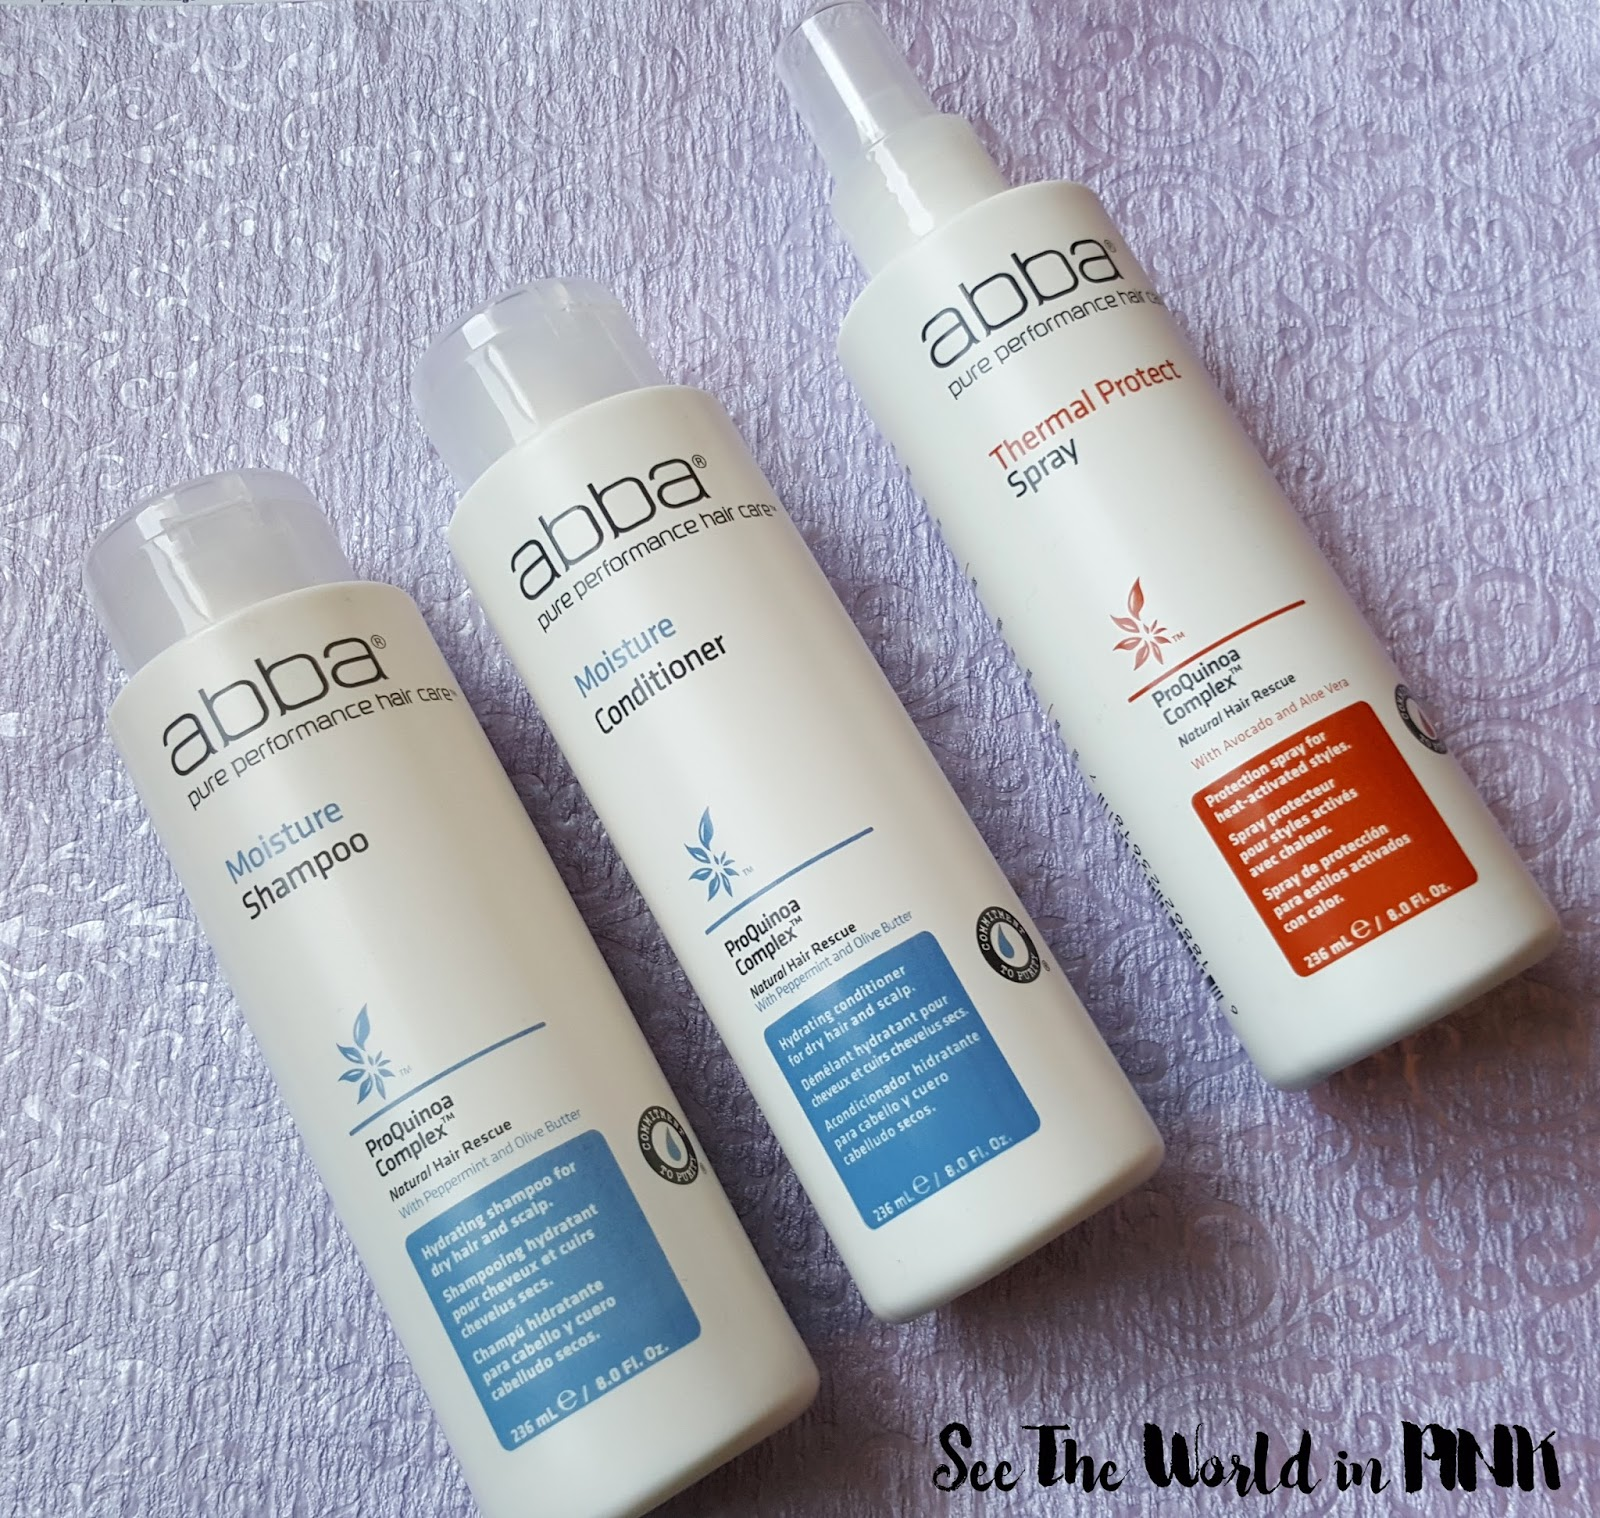 ABBA Hair Product Reviews - Moisture Shampoo & Conditioner and Thermal Protect Spray